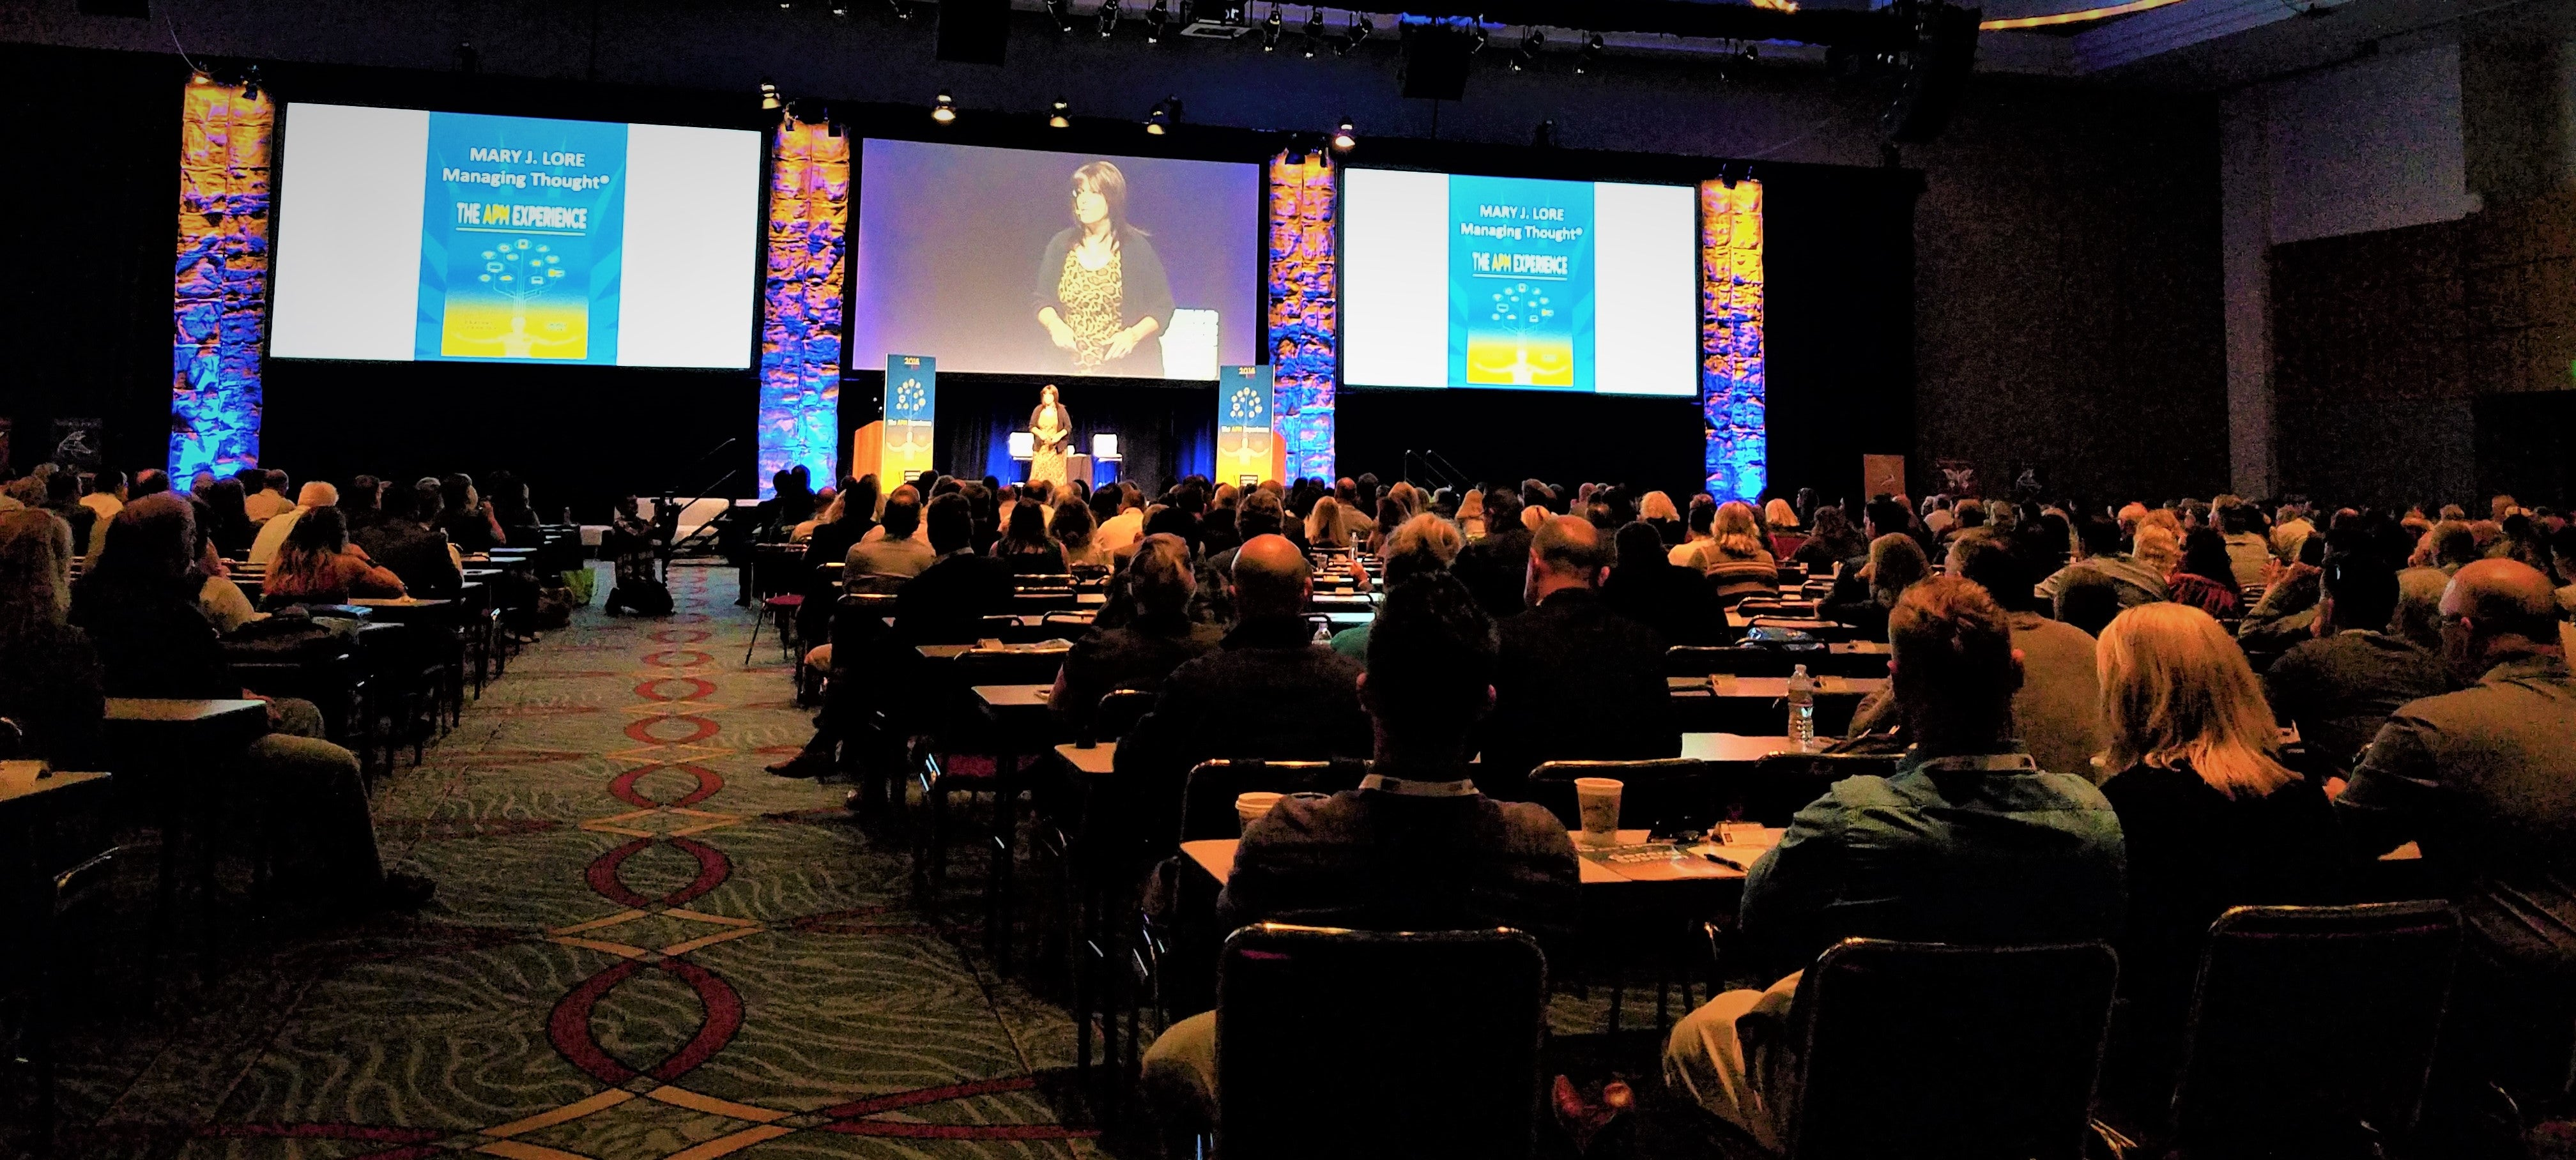 Mary Lore Sharing Managing Thought at American Pacific Mortgage Conference in San Diego